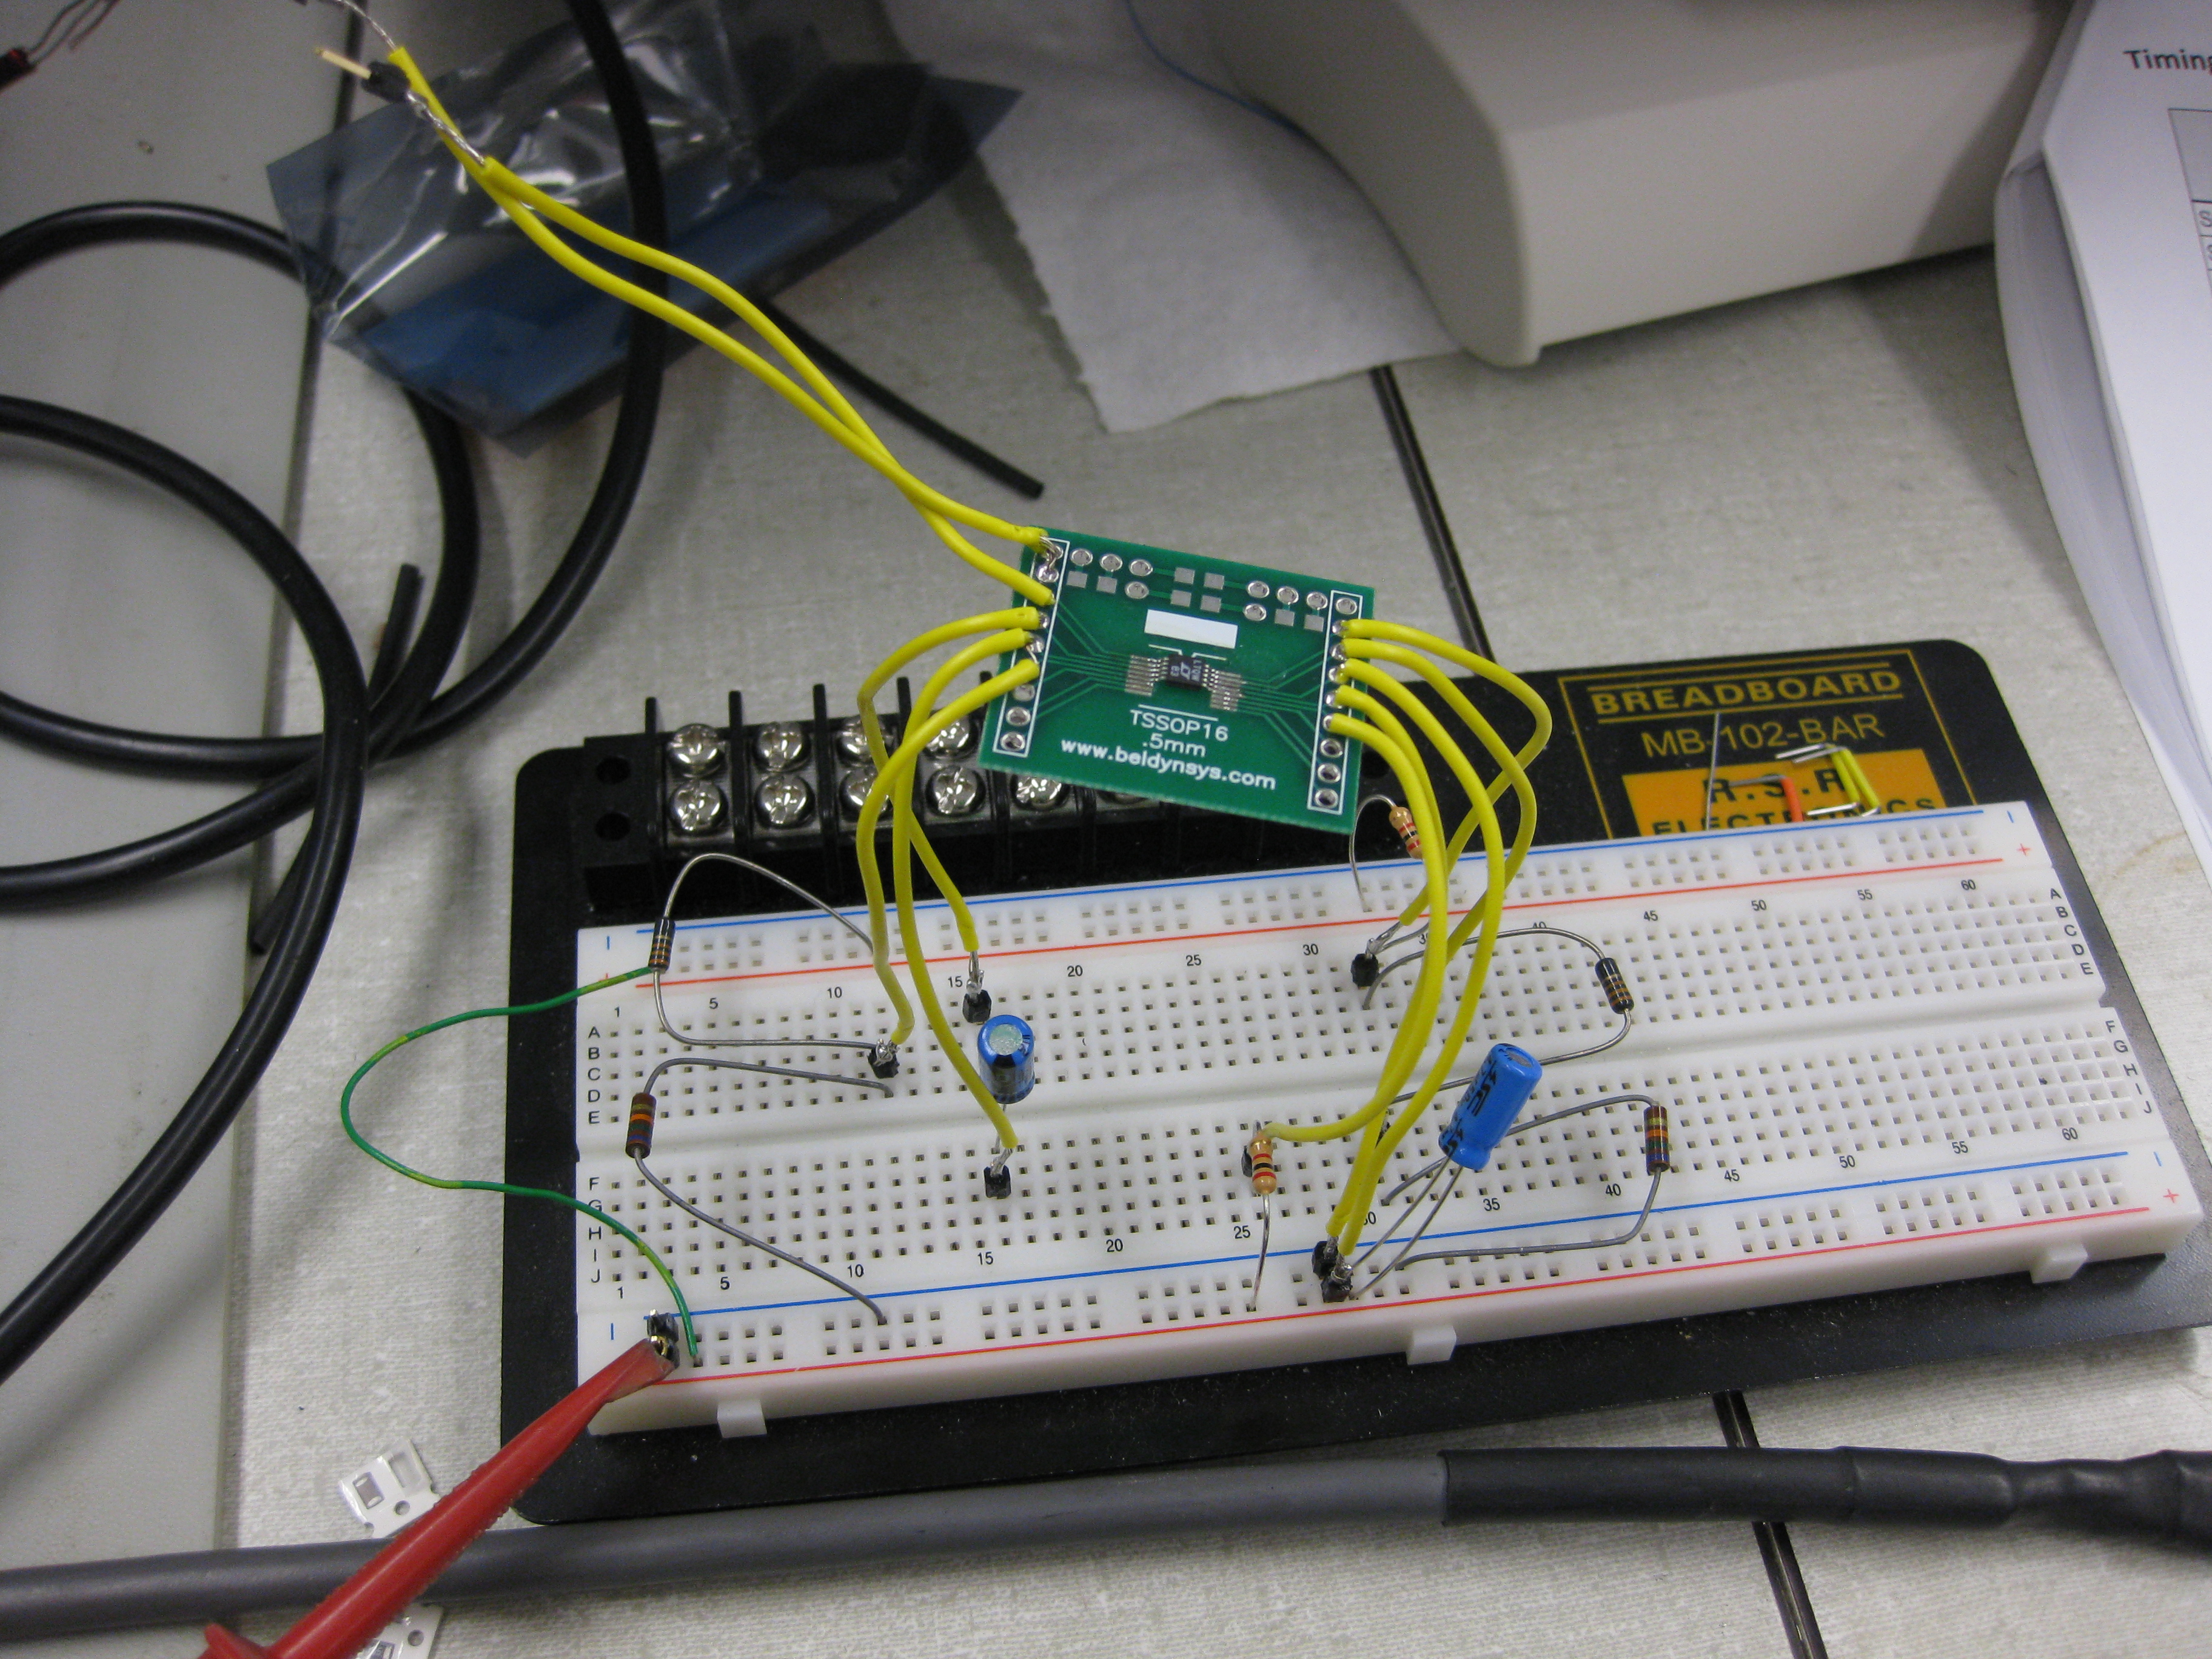 Kelli Hackers Lab Notebook Project 61 Breadboarded High Pass Filter Charge Counter Test Circuit